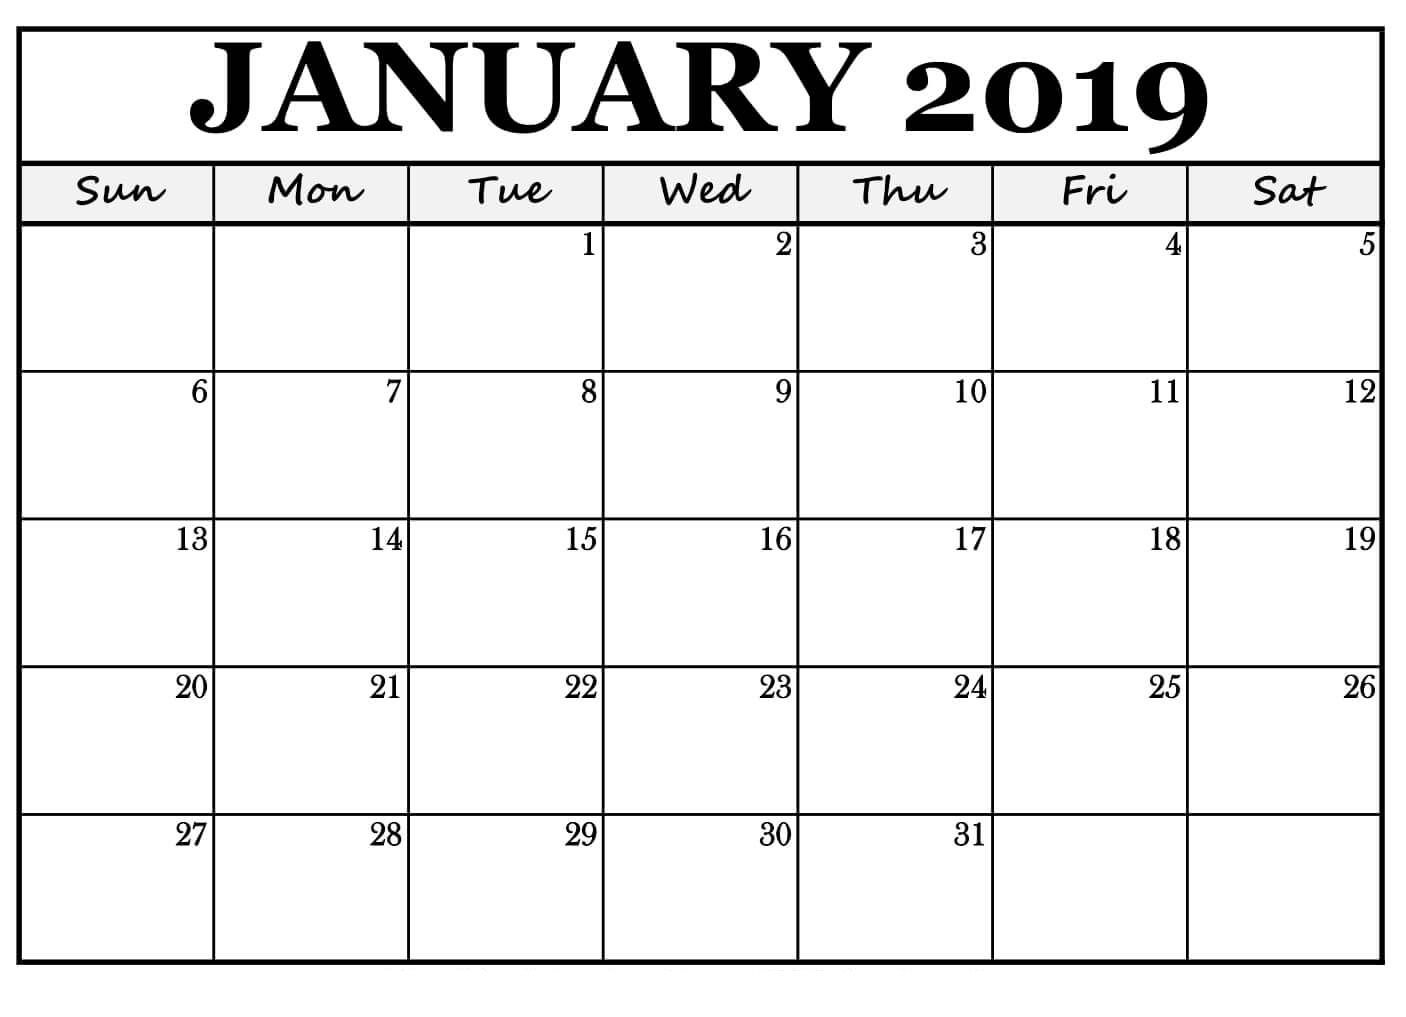 January 2019 Calendar For Landscape Free Print Free Printable